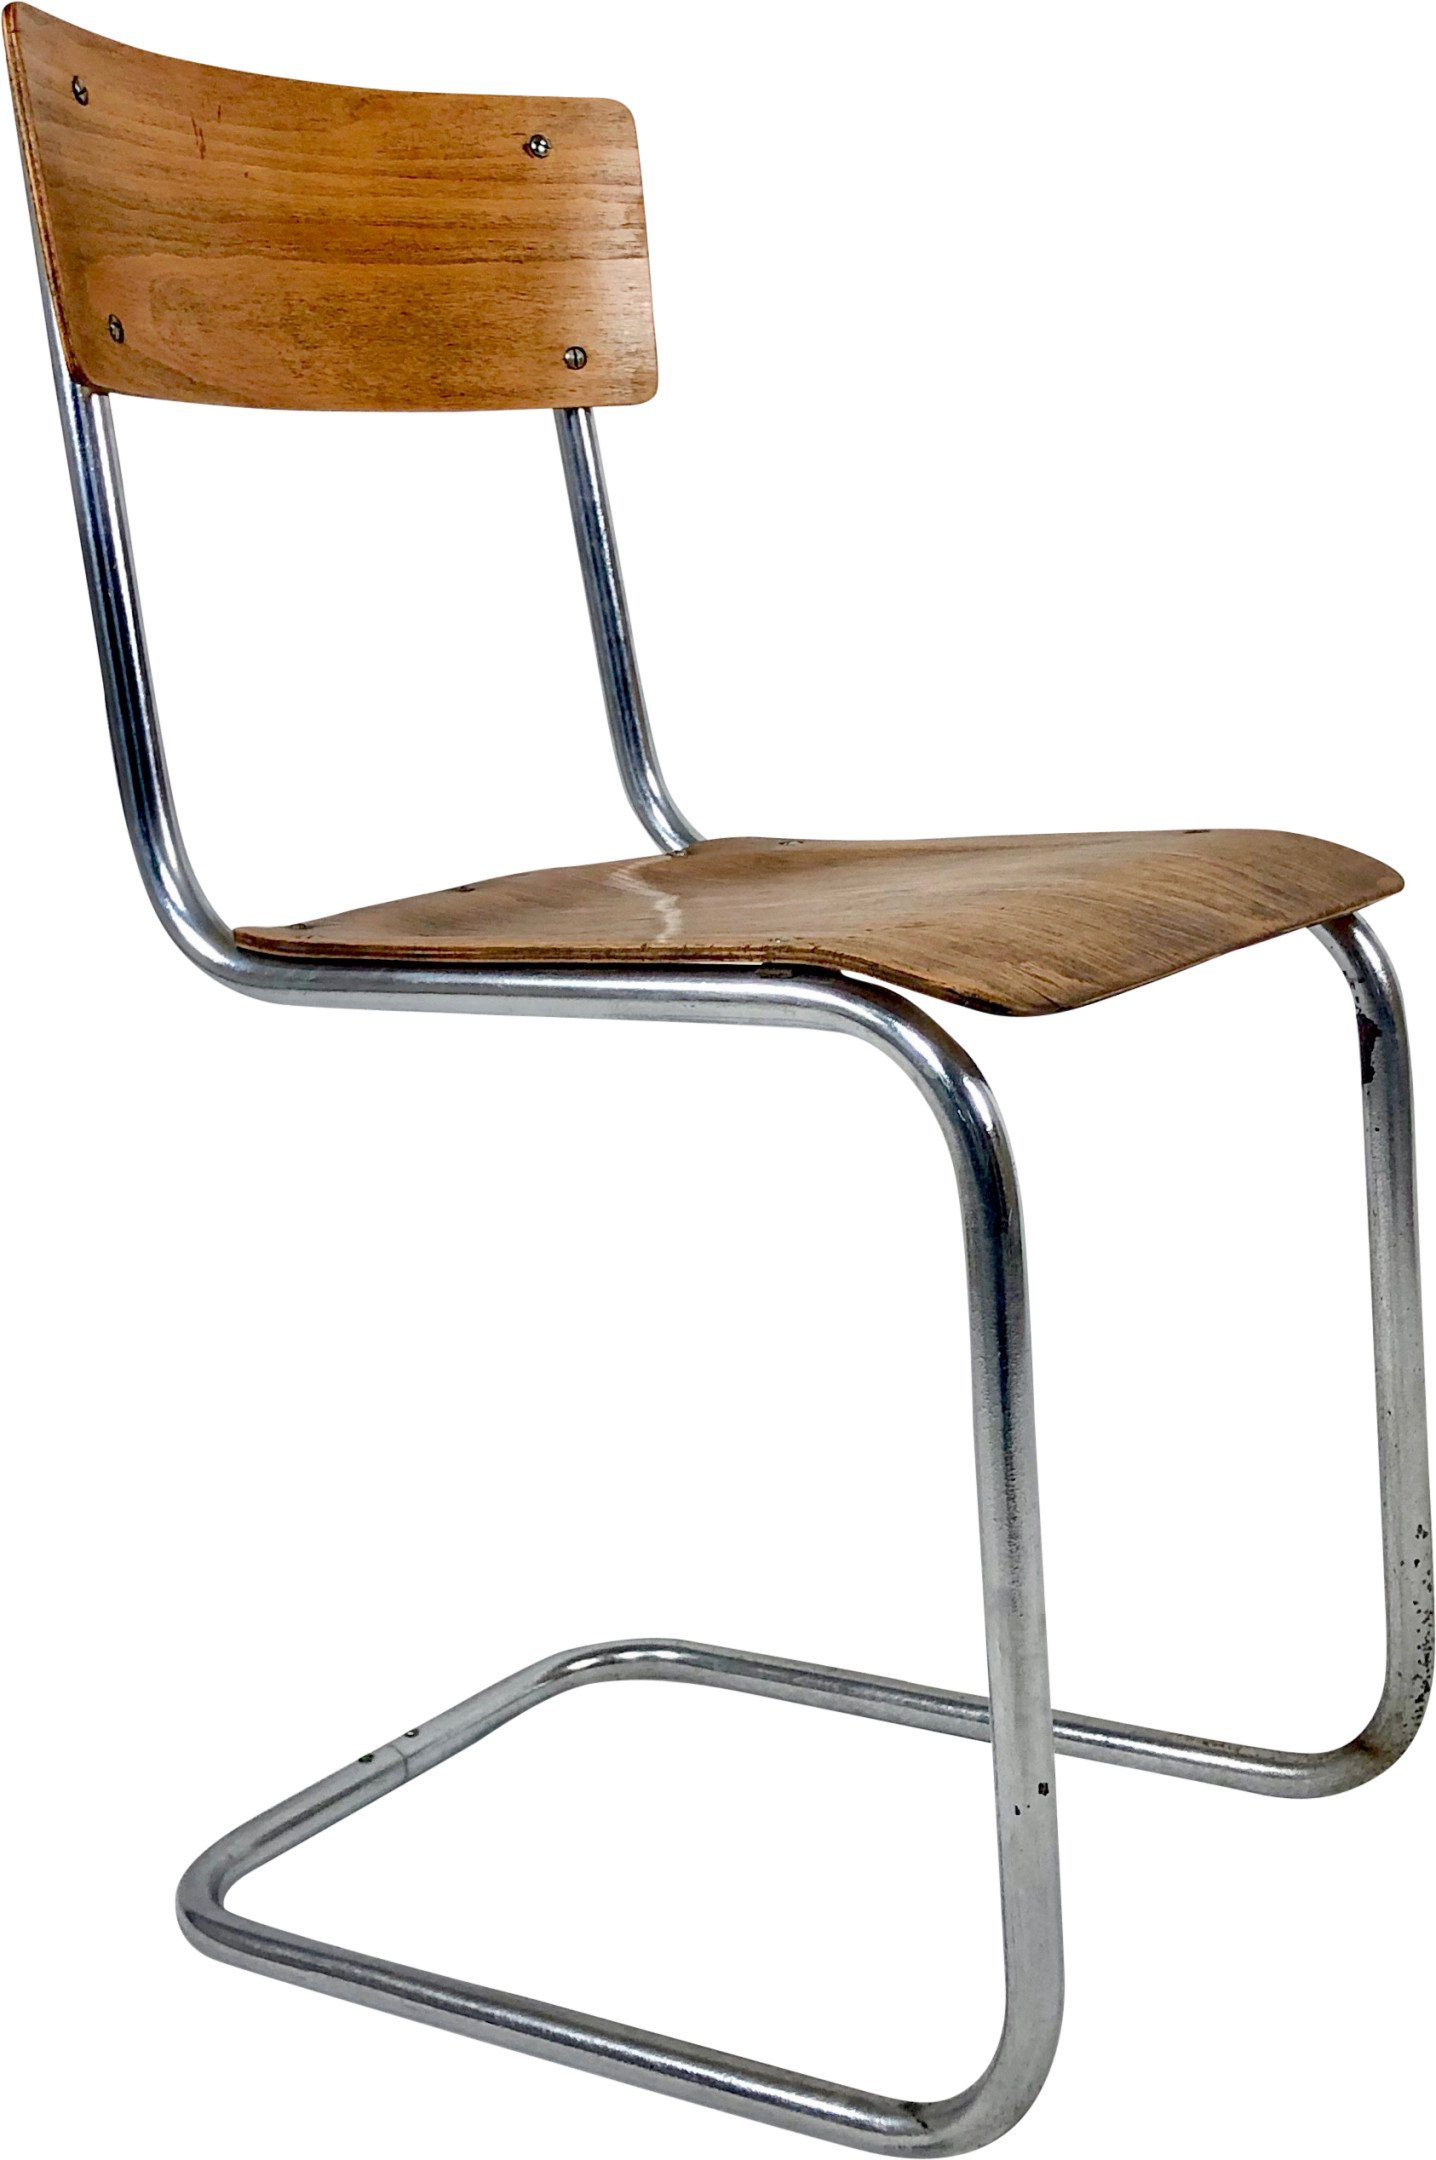 Chair by M. Stam for Thonet, Czechoslovakia, 1930s